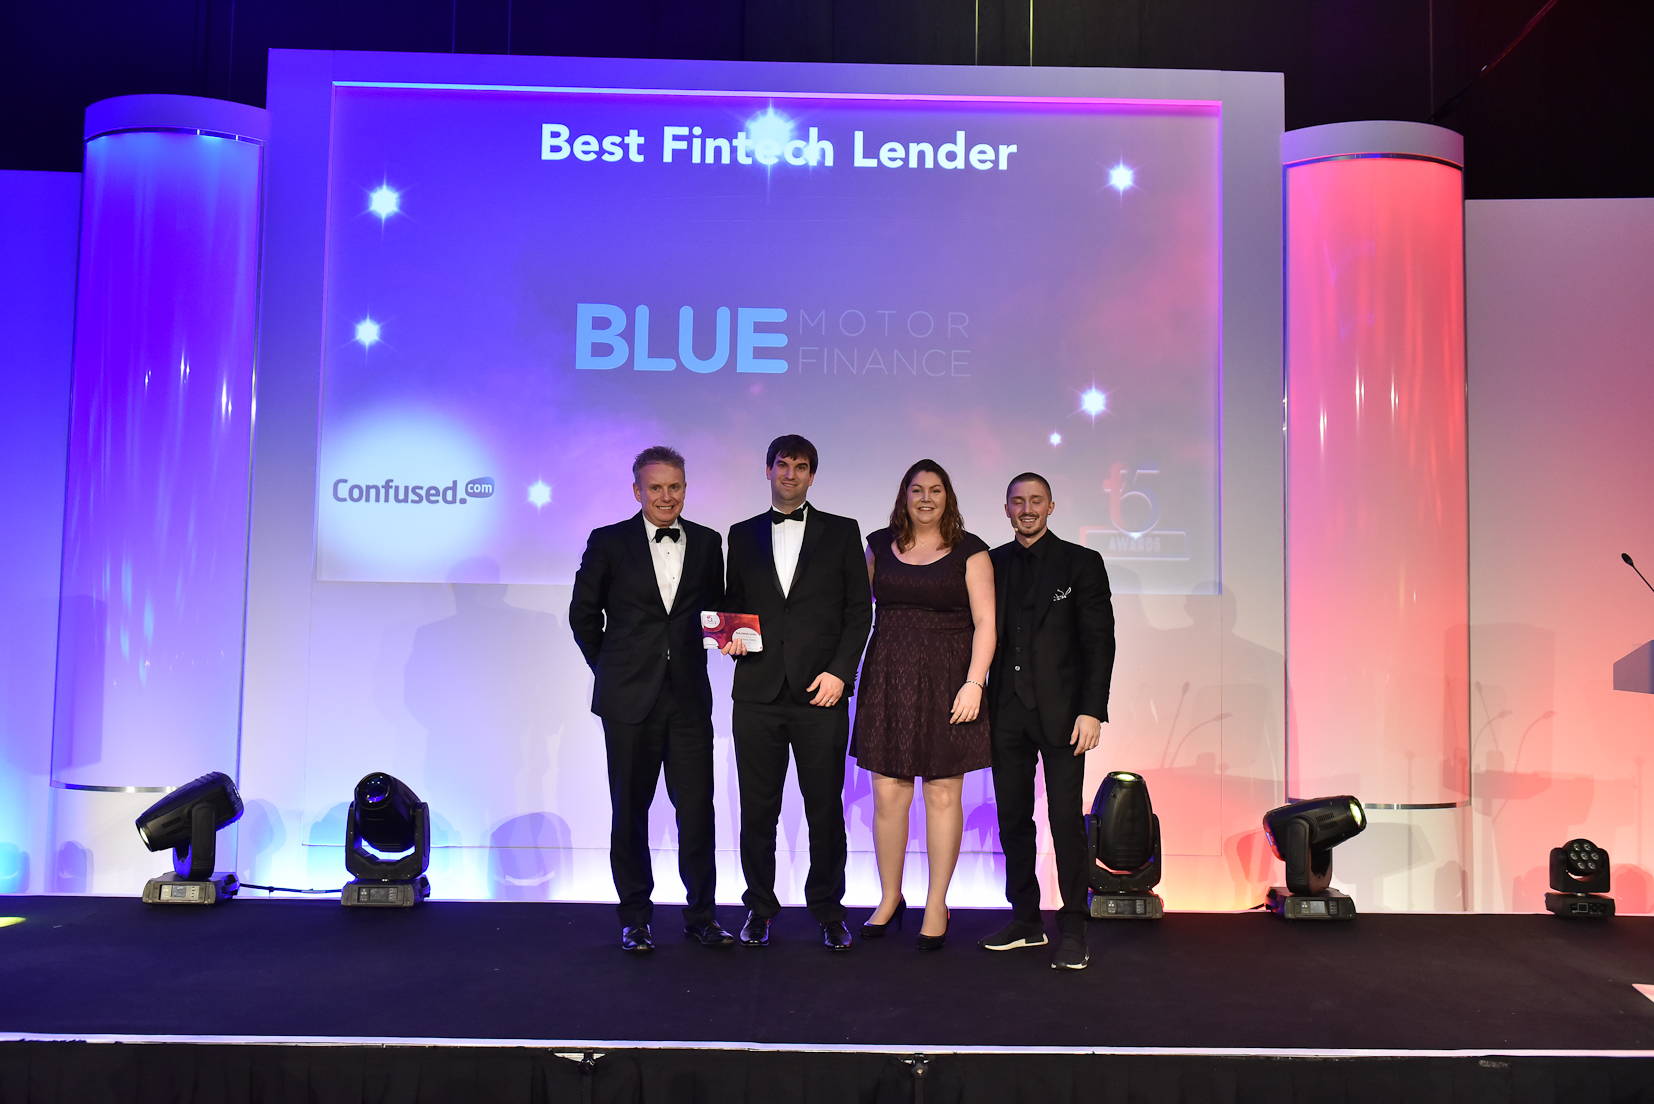 Winners F5 2017 - 2 Best Fintech Lender